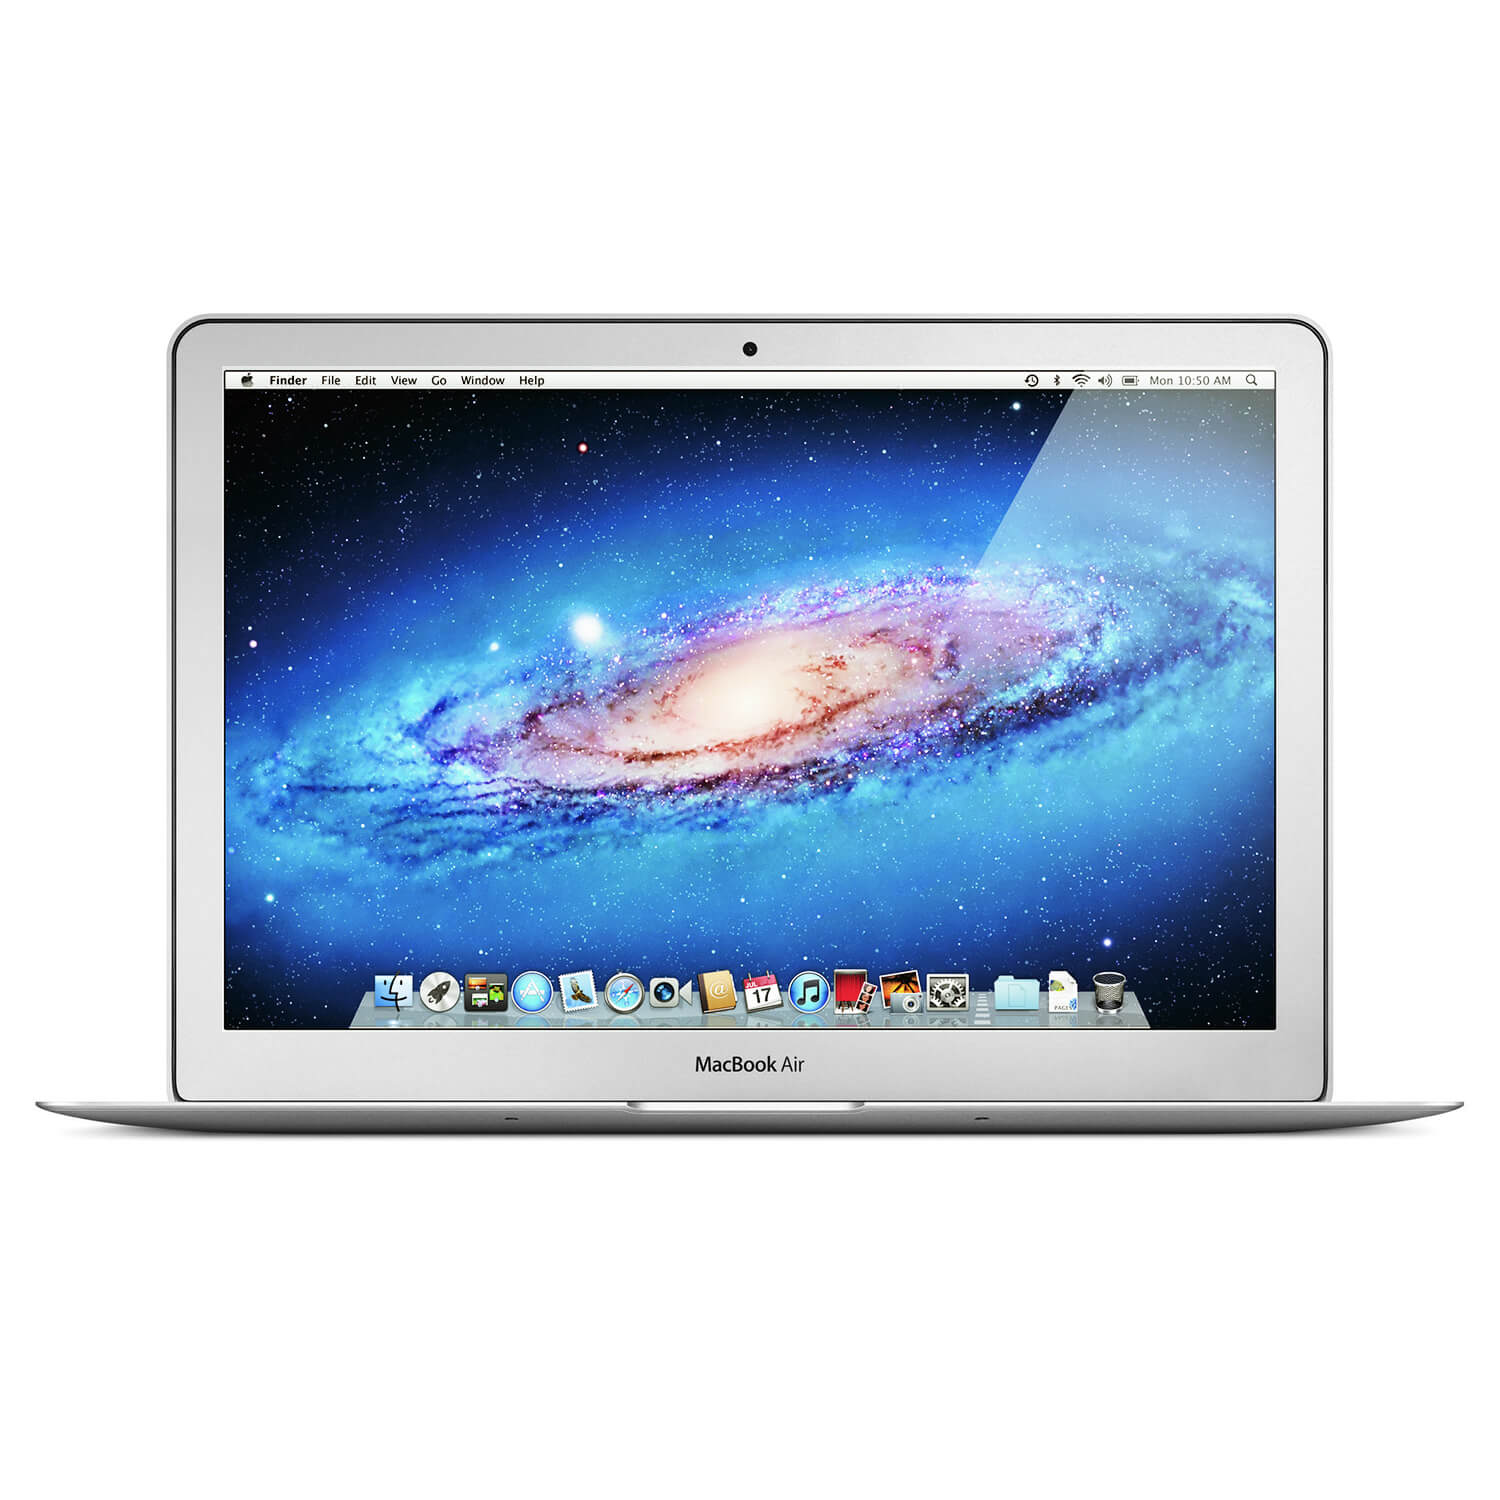 "Refurbished Apple MacBook Air 13.3"" LED Laptop Intel i5-3317U Dual Core 1.7GHz 4GB 64GB SSD"